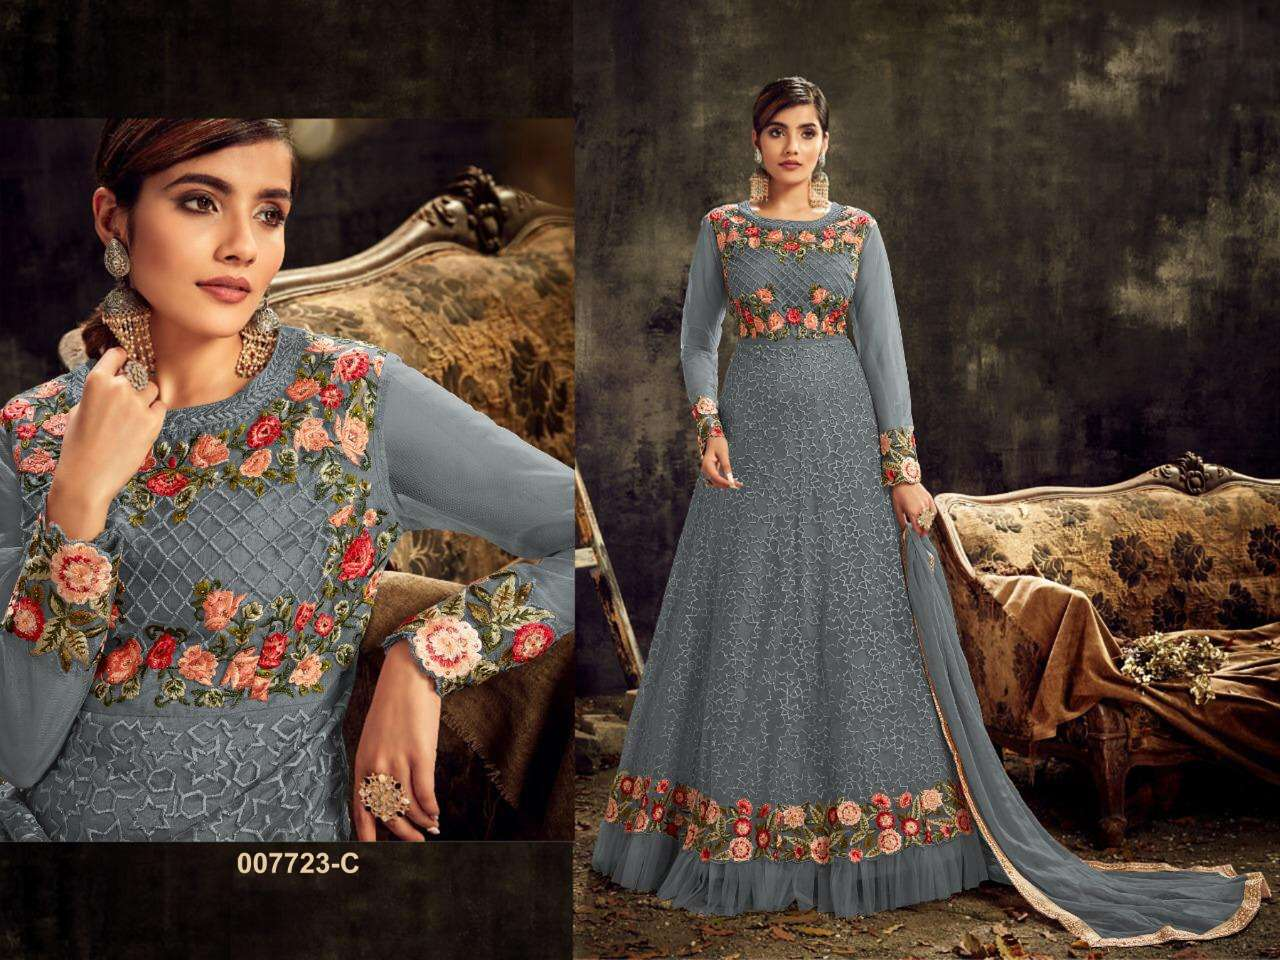 HOTLADYY 7723 06 DESIGNER HEAVY NET EMBROIDERY WORK PARTYWEAR UNSTITCHED GOWN WITH DUPATTA IN SINGLES